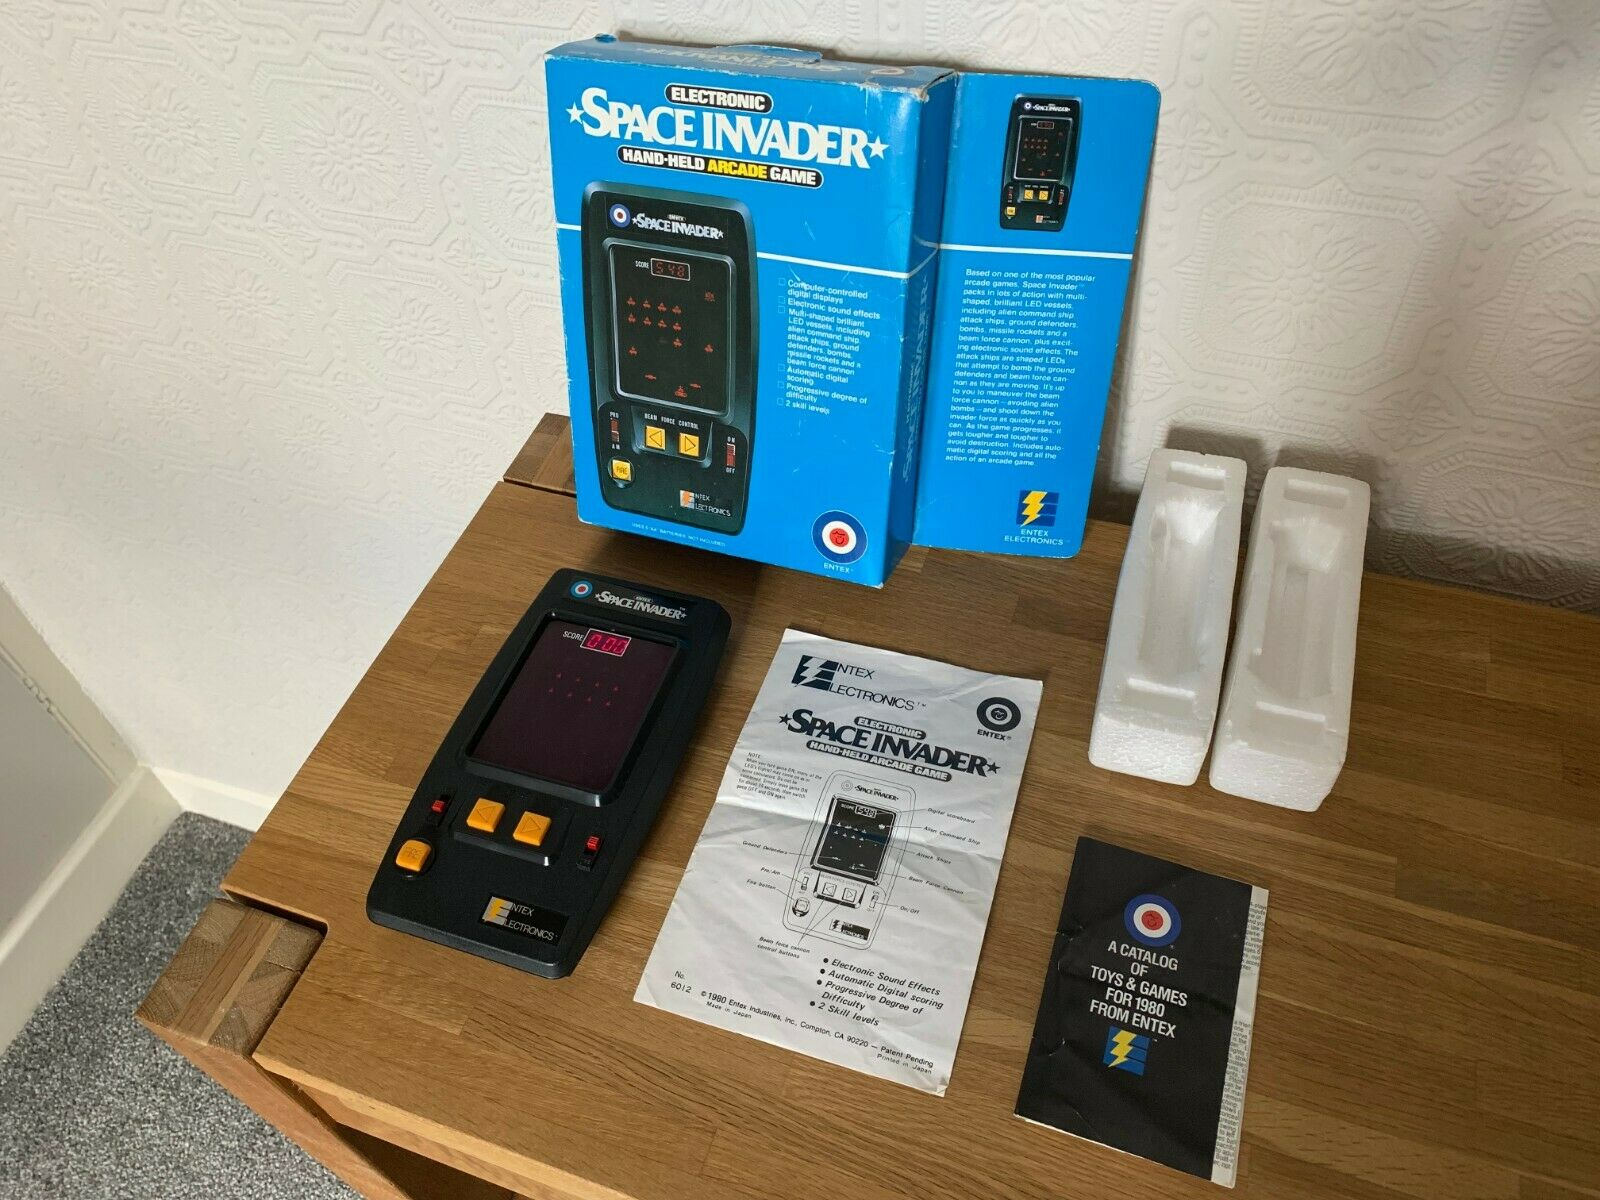 Superb Boxed Entex Space Invader Vintage 1980 Handheld Electronic Game in VGC.